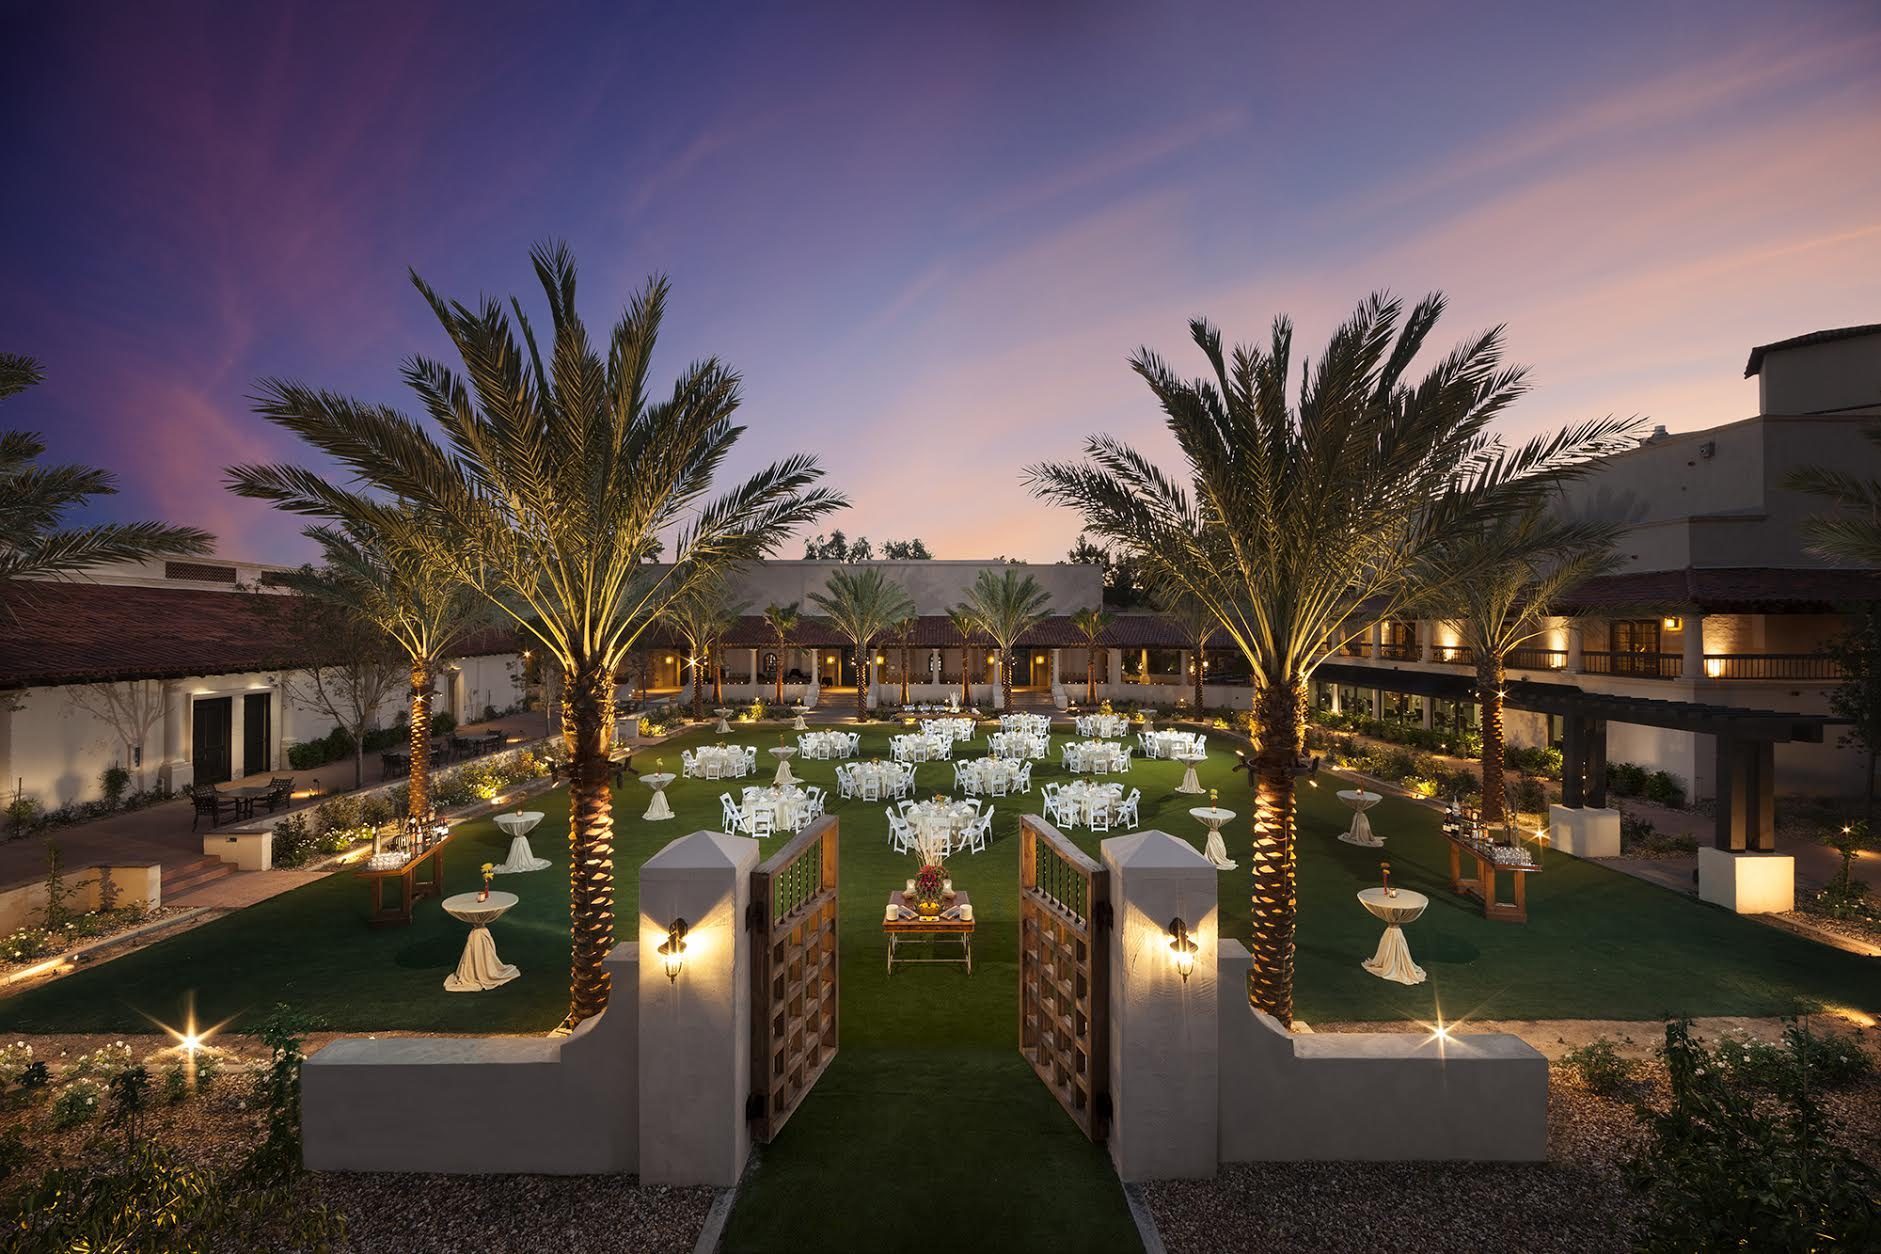 scottsdale resort 2.jpg